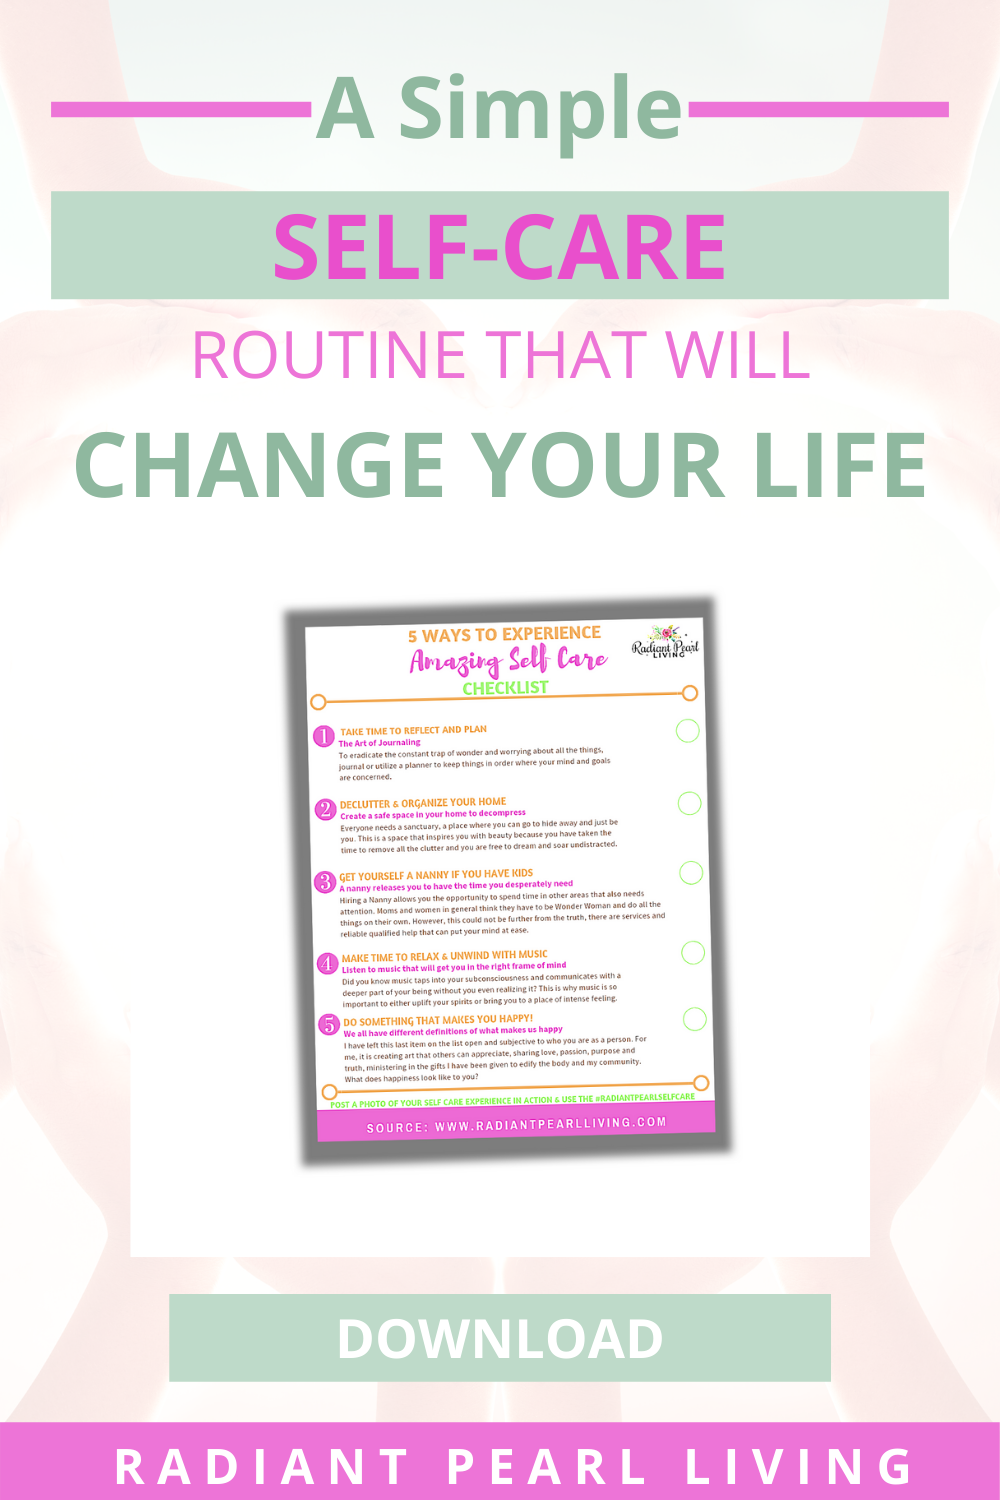 Discover amazing self care this season with a simple routine that will change your life. Ready to make the most memorable time with your loved ones at home? Explore these tips to take care of yourself while doing all the fun amazing things with family. Download the checklist to remind yourself of self-care with your family and enjoy all the must do essentials while you enjoy some quality time together. Pin to Save!